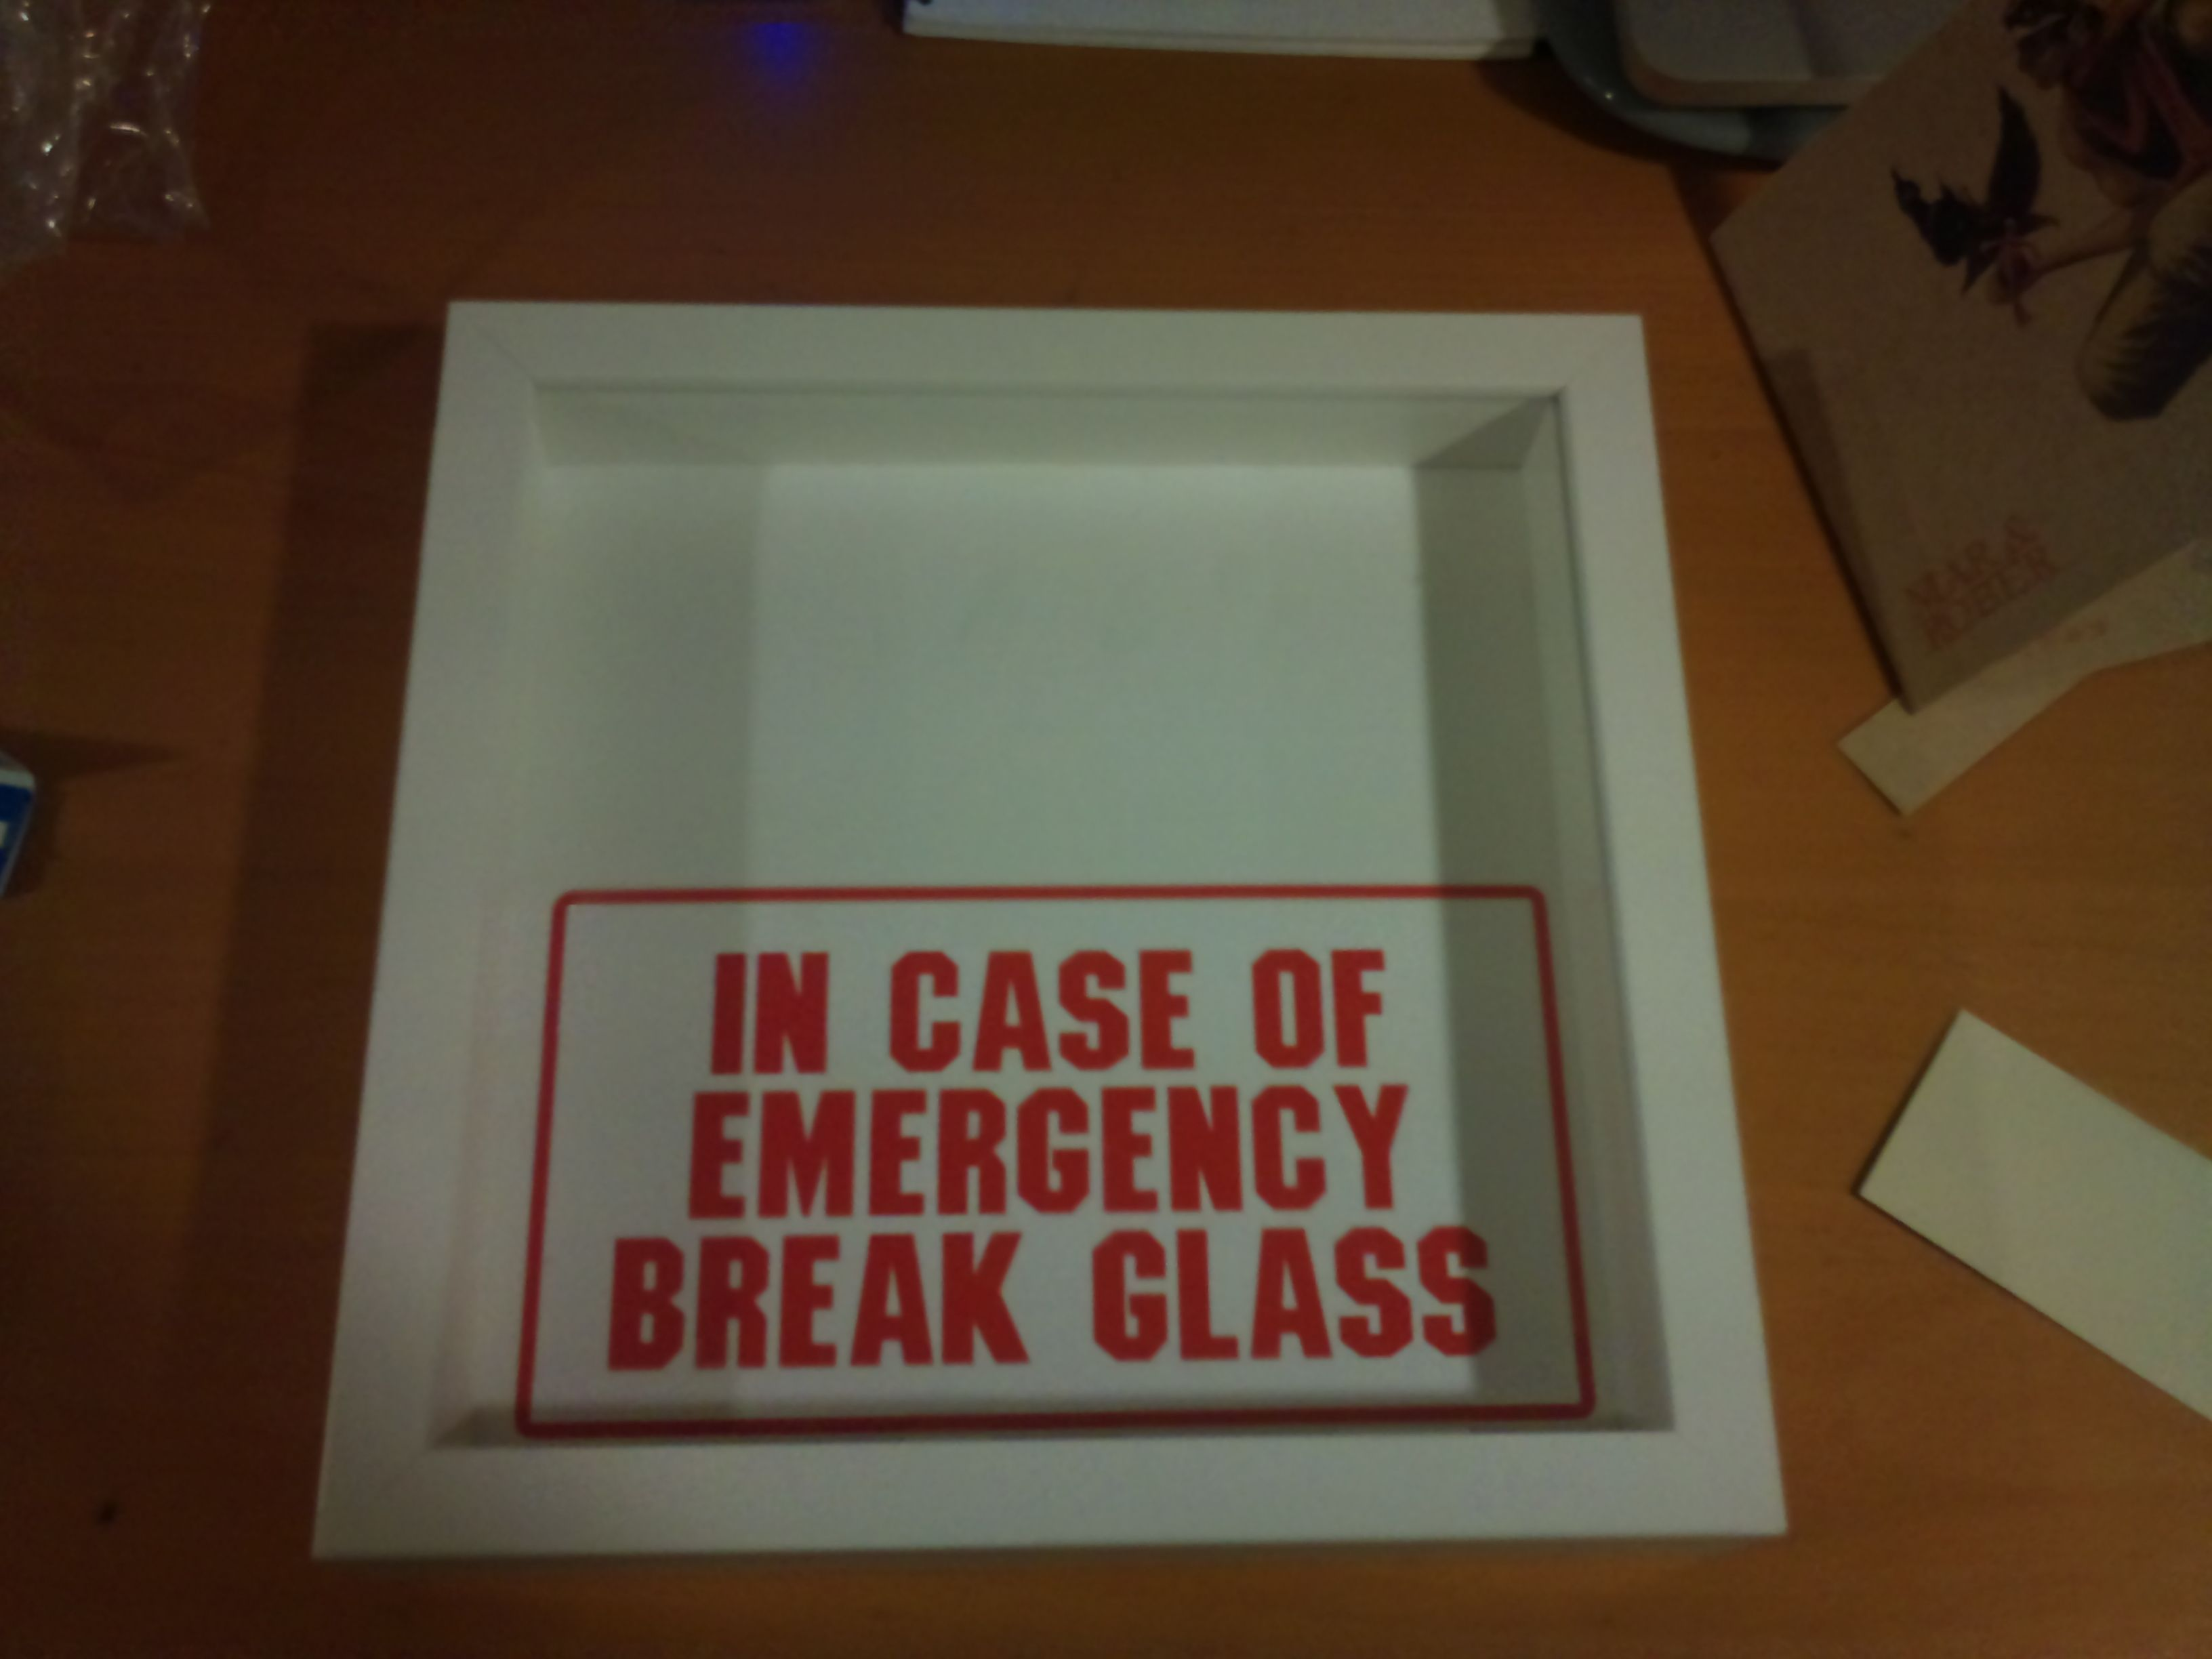 Emergency Make Your Ow Shadow Box With Vinal Decal In Case Of